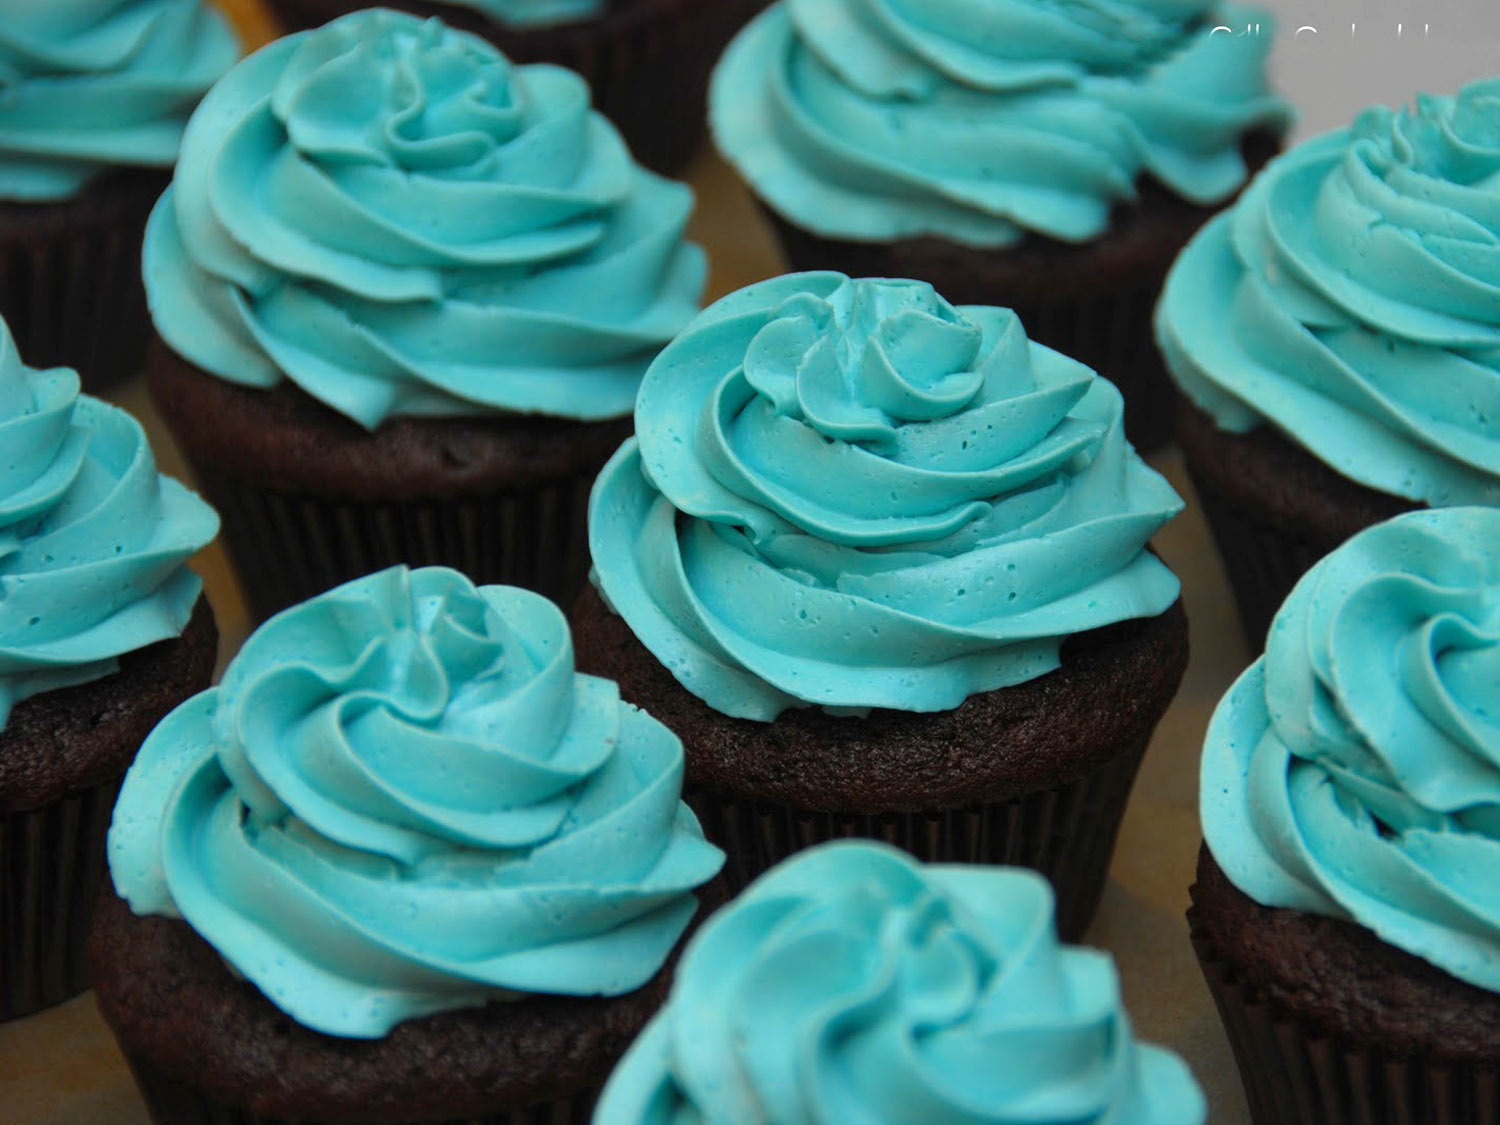 photo_products_top_cupcakes.jpg